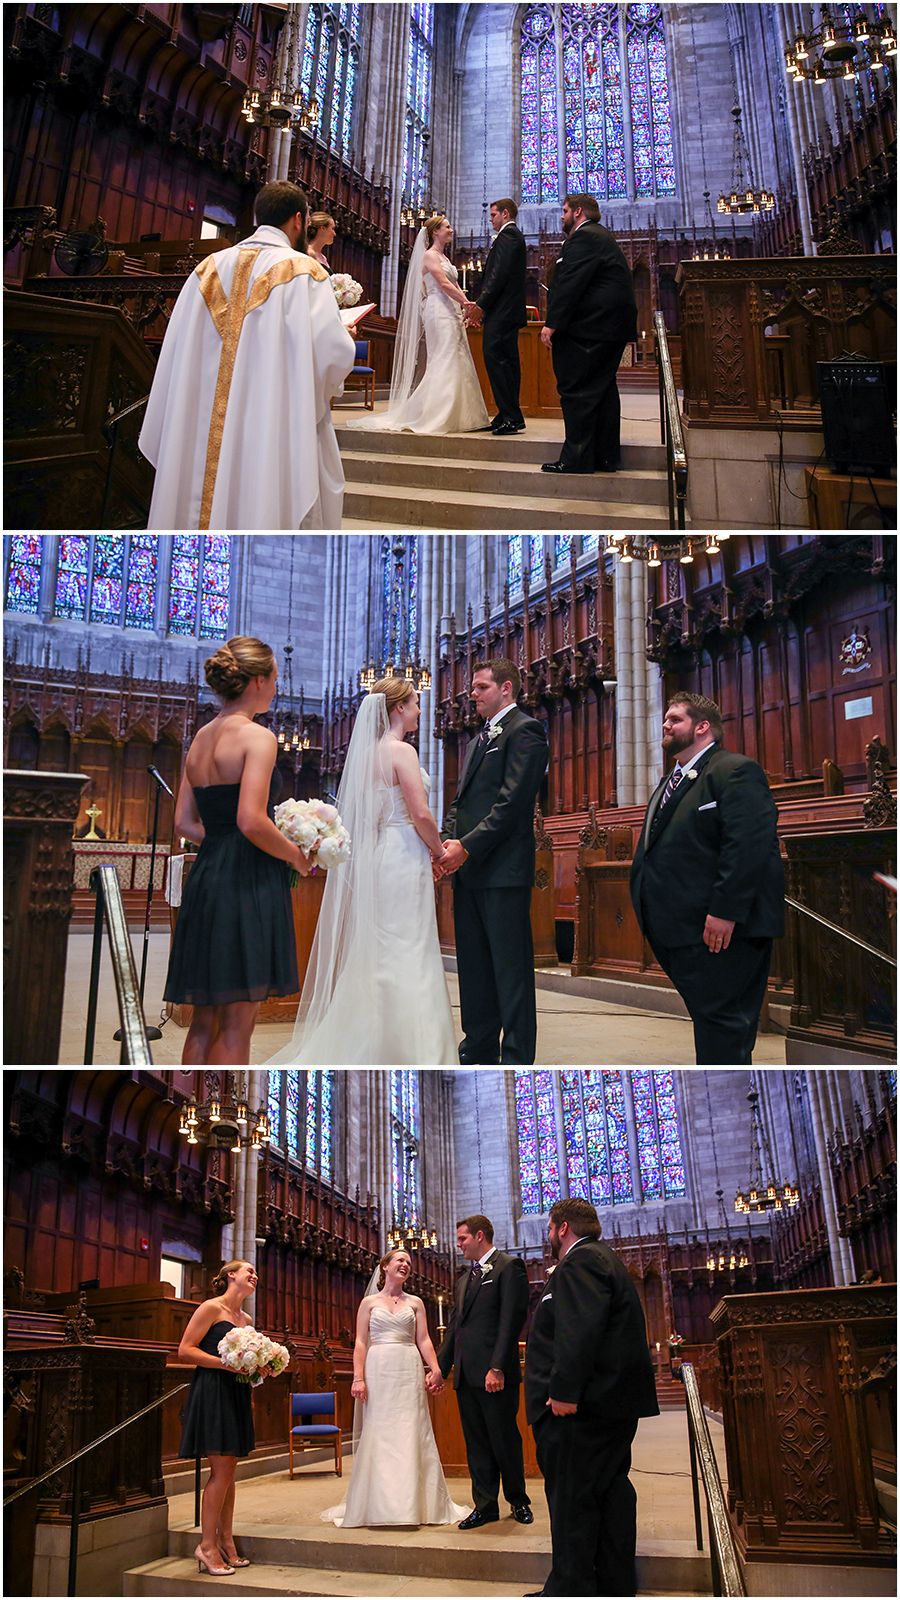 Princeton University Wedding | Marie Labbancz Photography